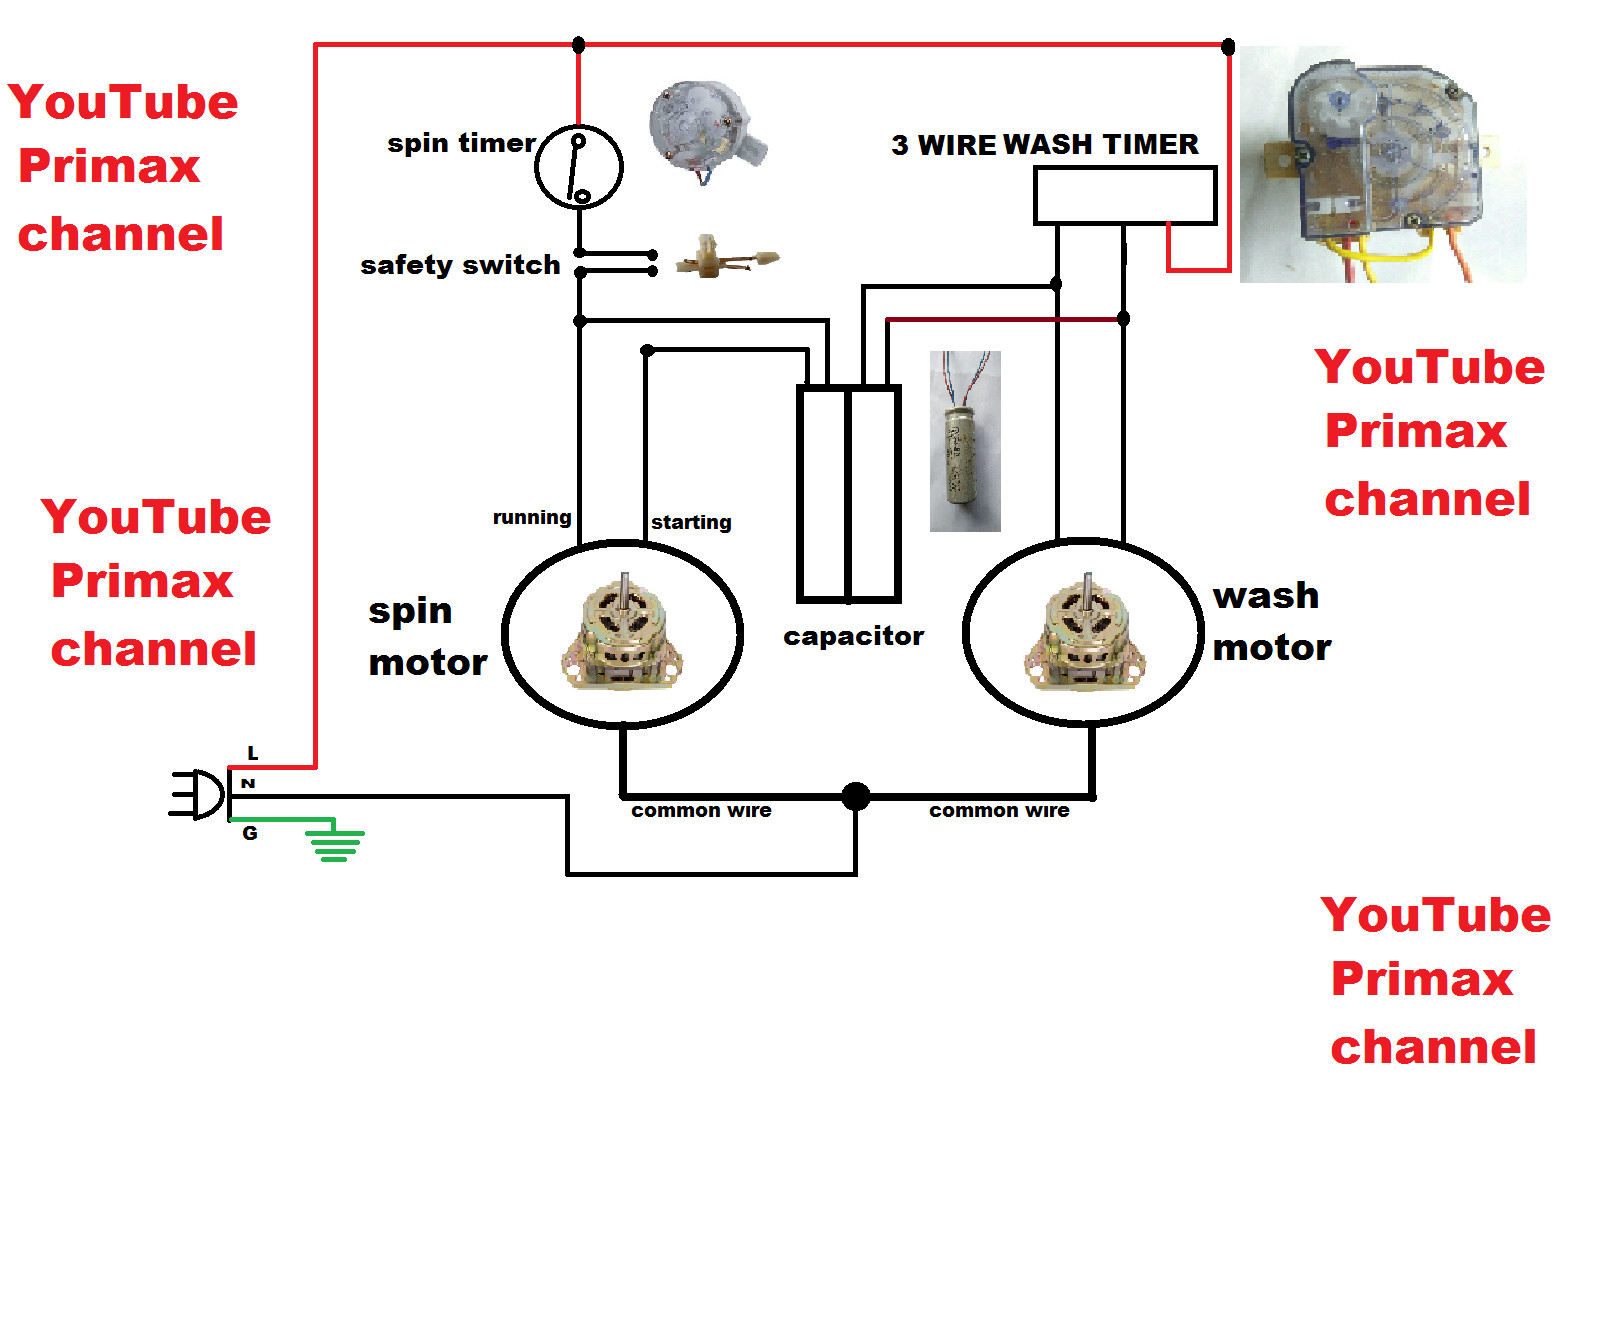 hight resolution of 3 wire washing machine motor wiring diagram collection 3 wier timer diagram connection simple washing